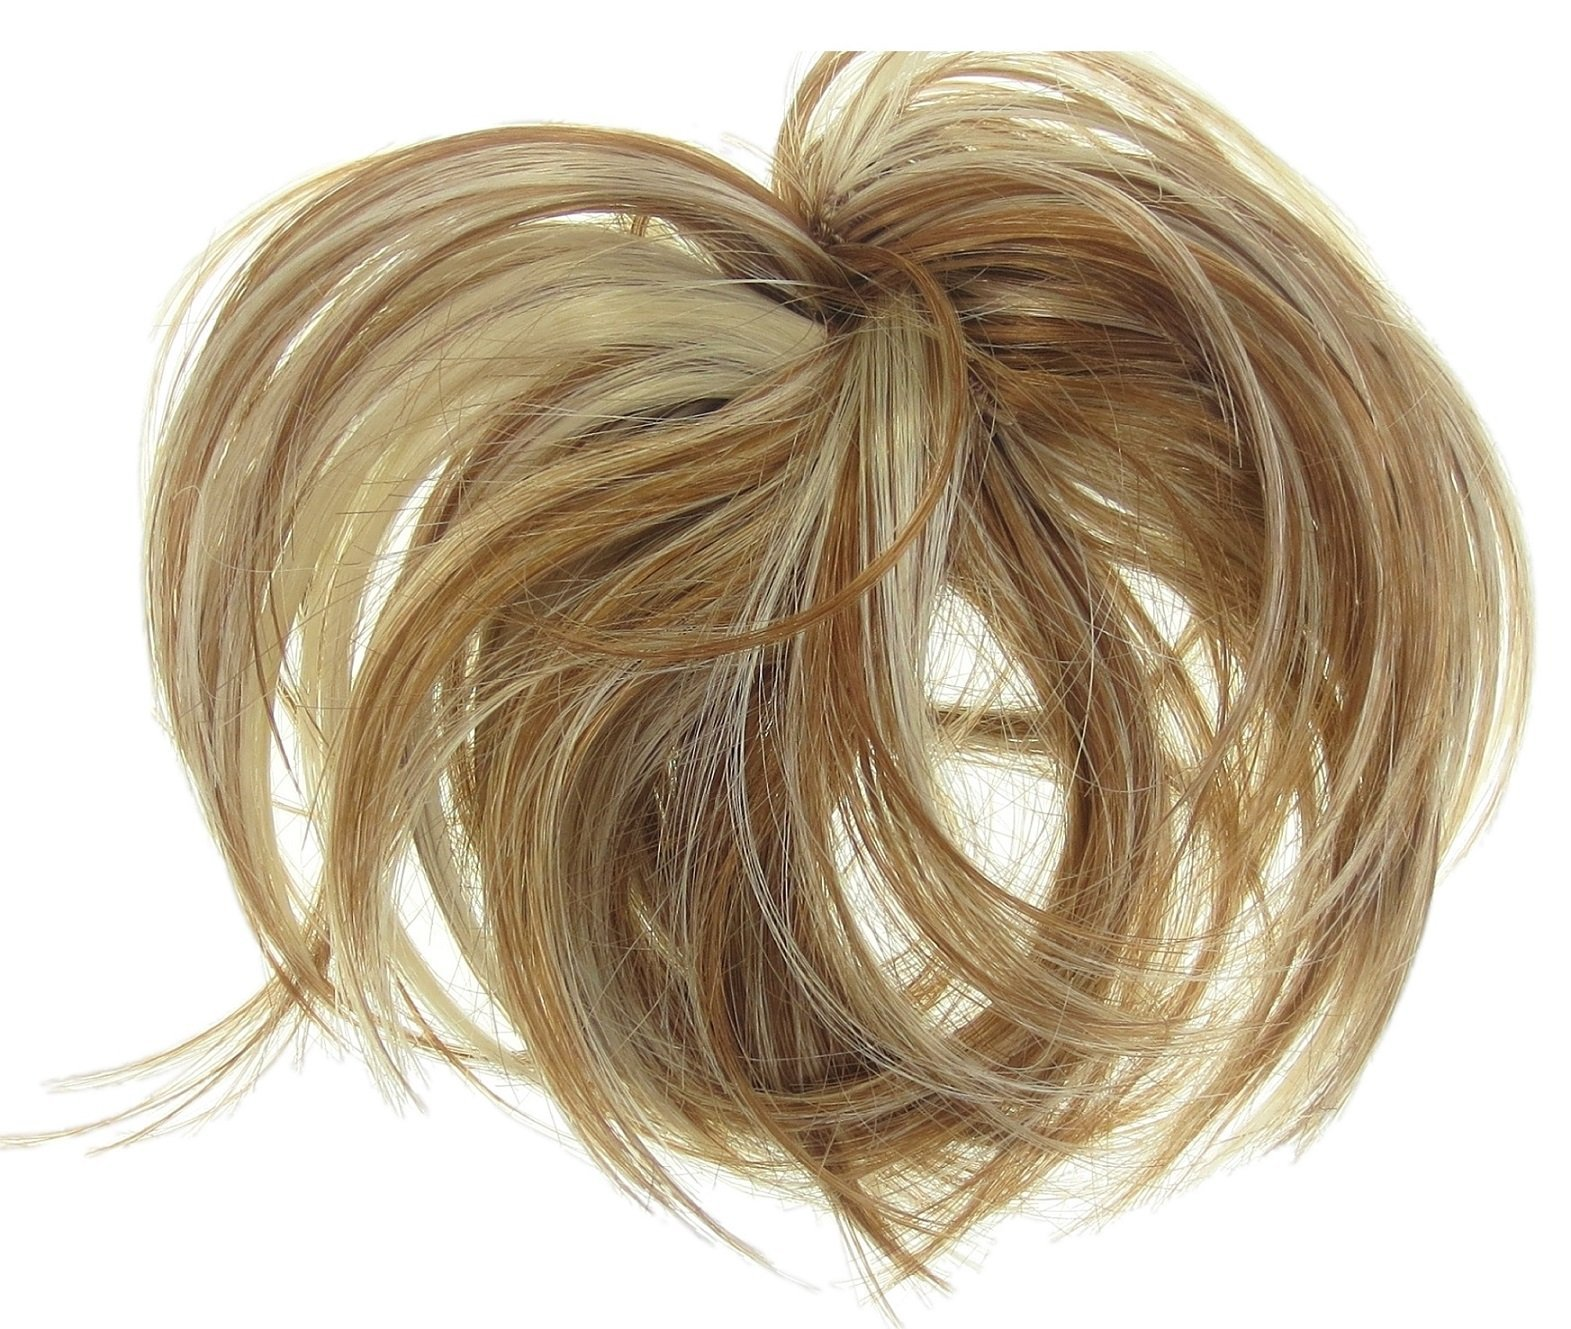 New Style Hair Extension Scrunchie Natural Blonde Up Do Down Do Mult Tones Sp. Synthetic